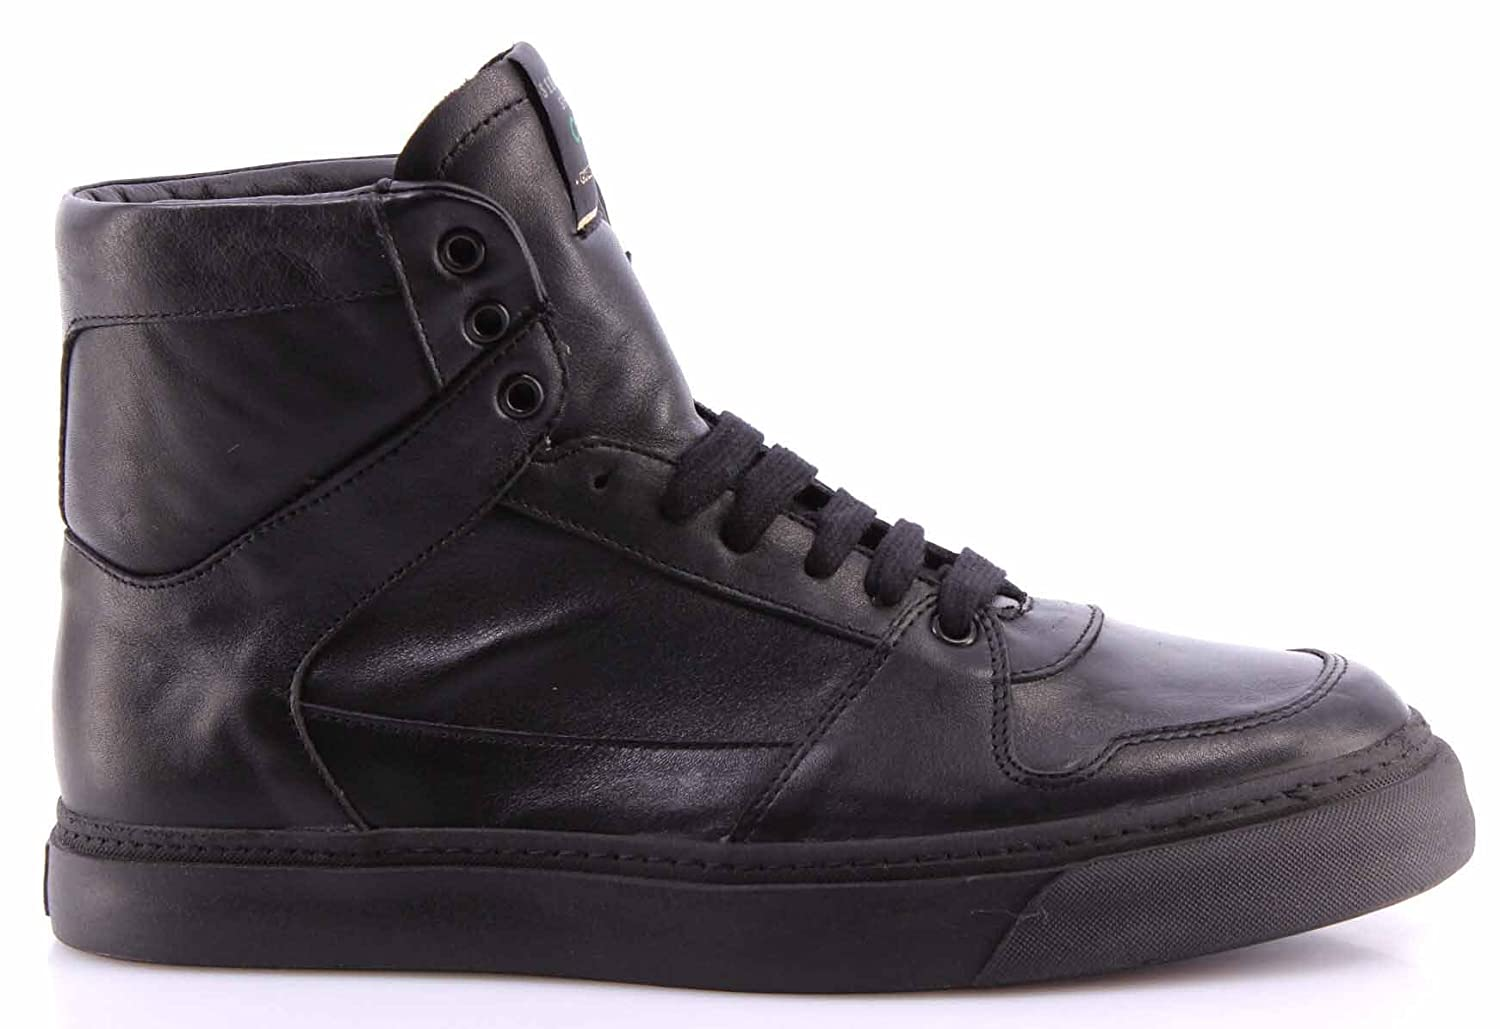 ab90972e5b0 Serafini Men's Shoes High Top Sneakers Gold Edition Sport 4700G Leather  Black: Amazon.co.uk: Shoes & Bags